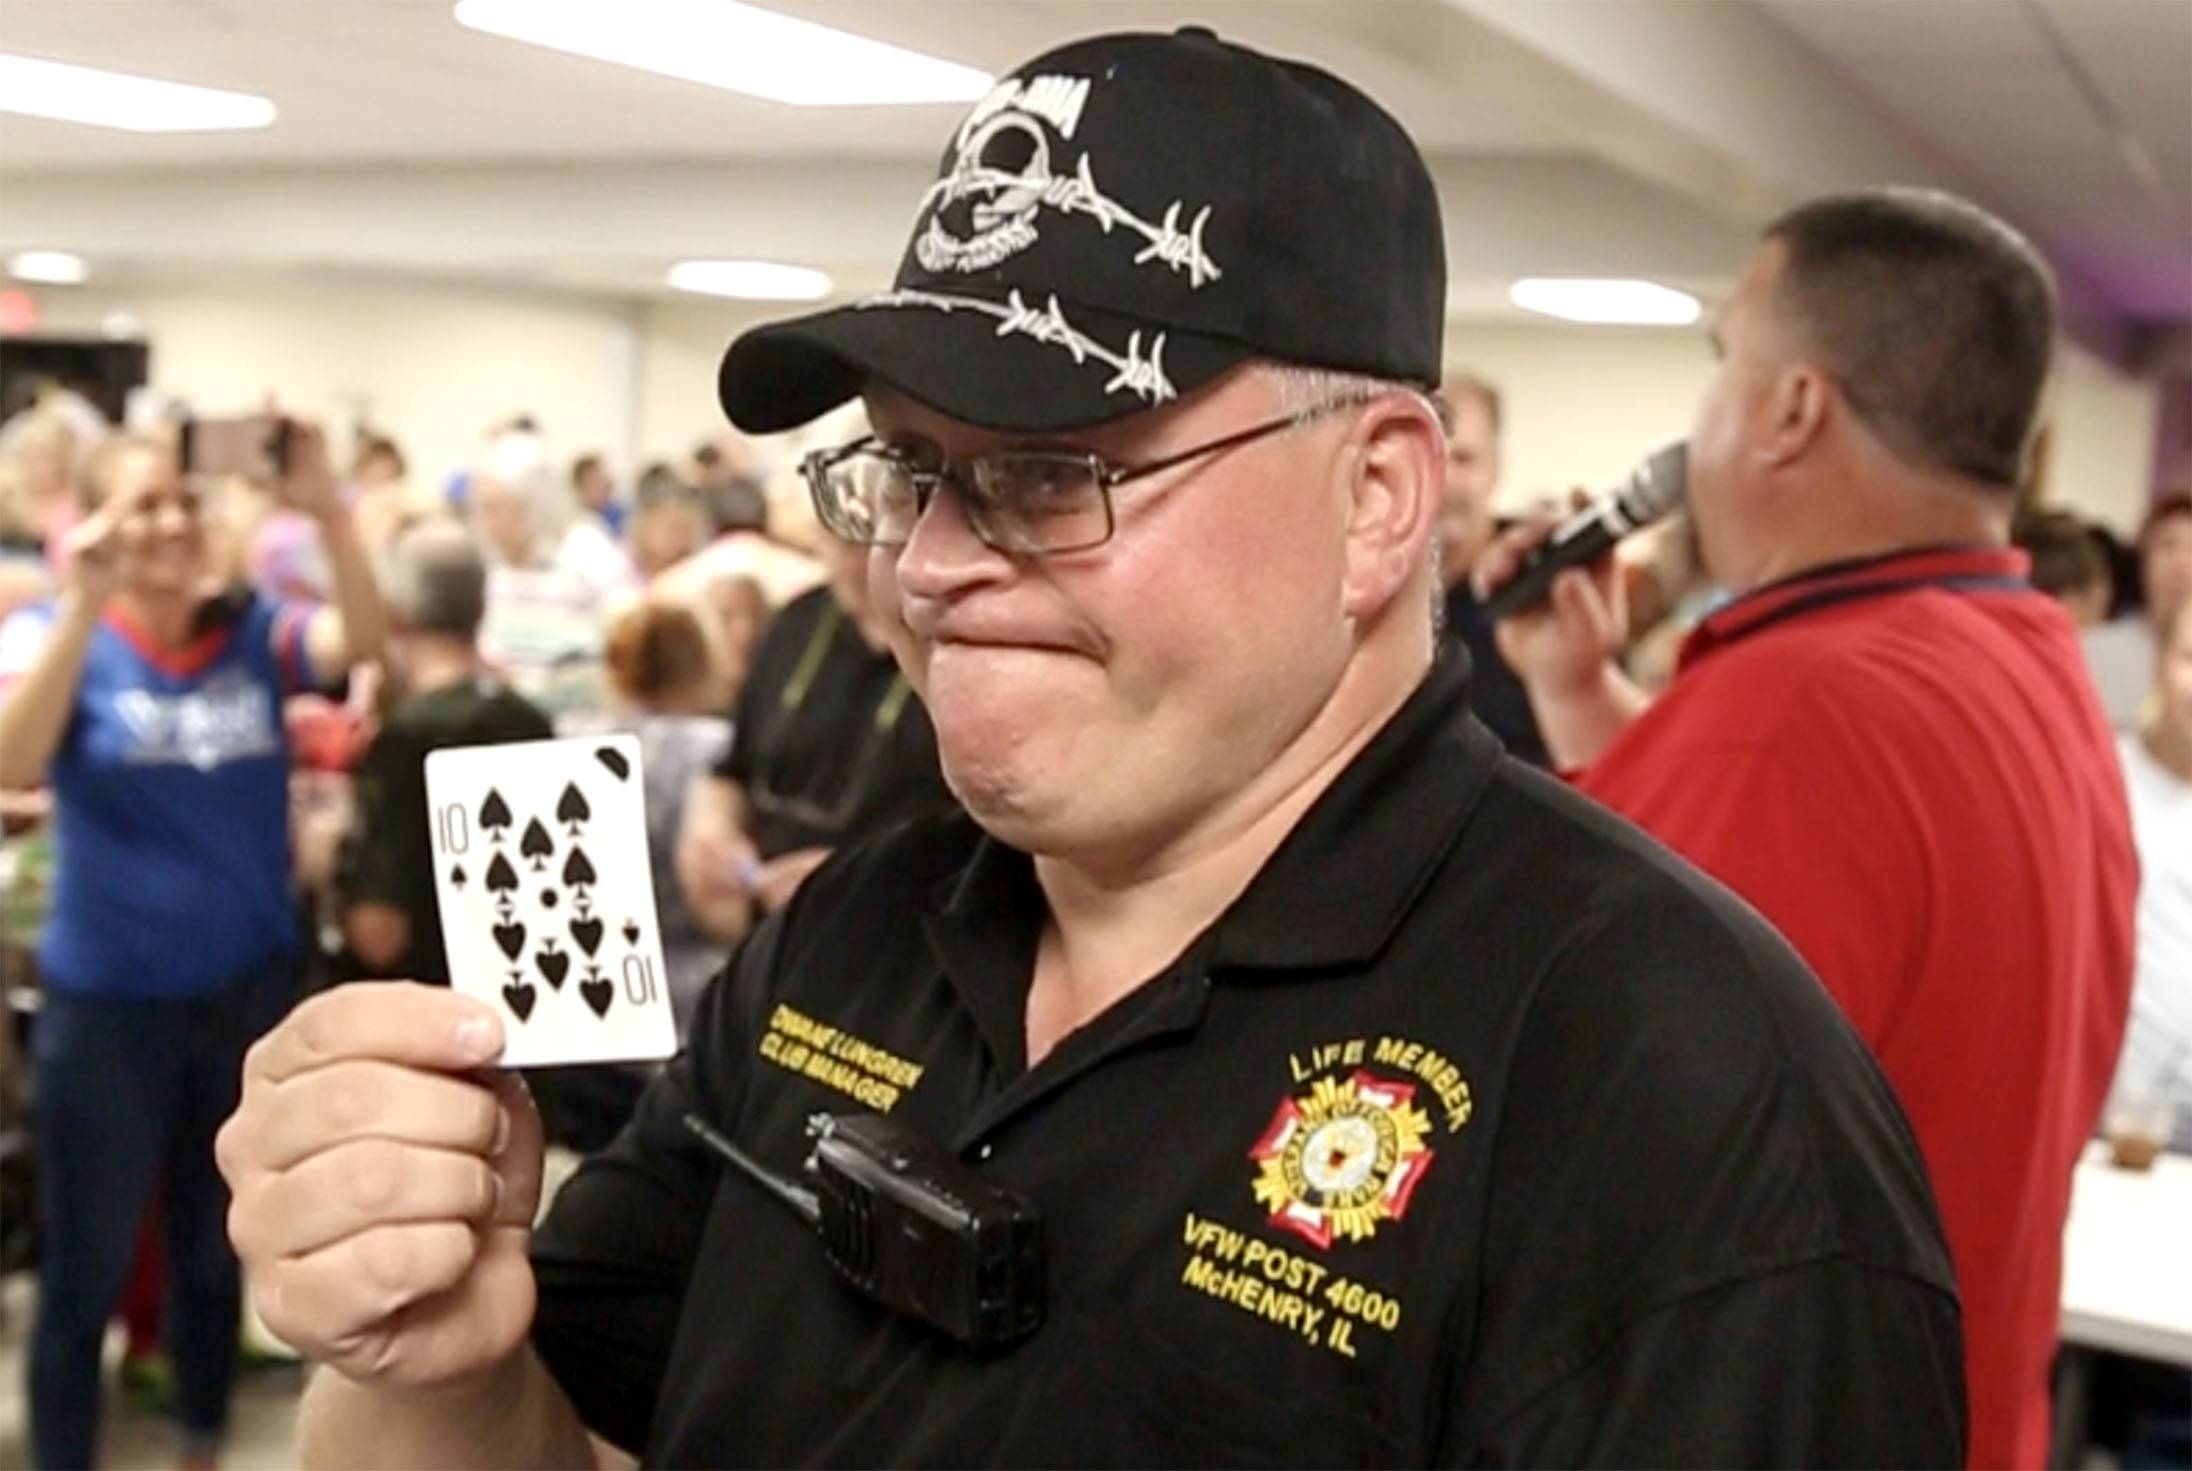 7 things you need to know about Tuesday's McHenry VFW Queen of Hearts drawing